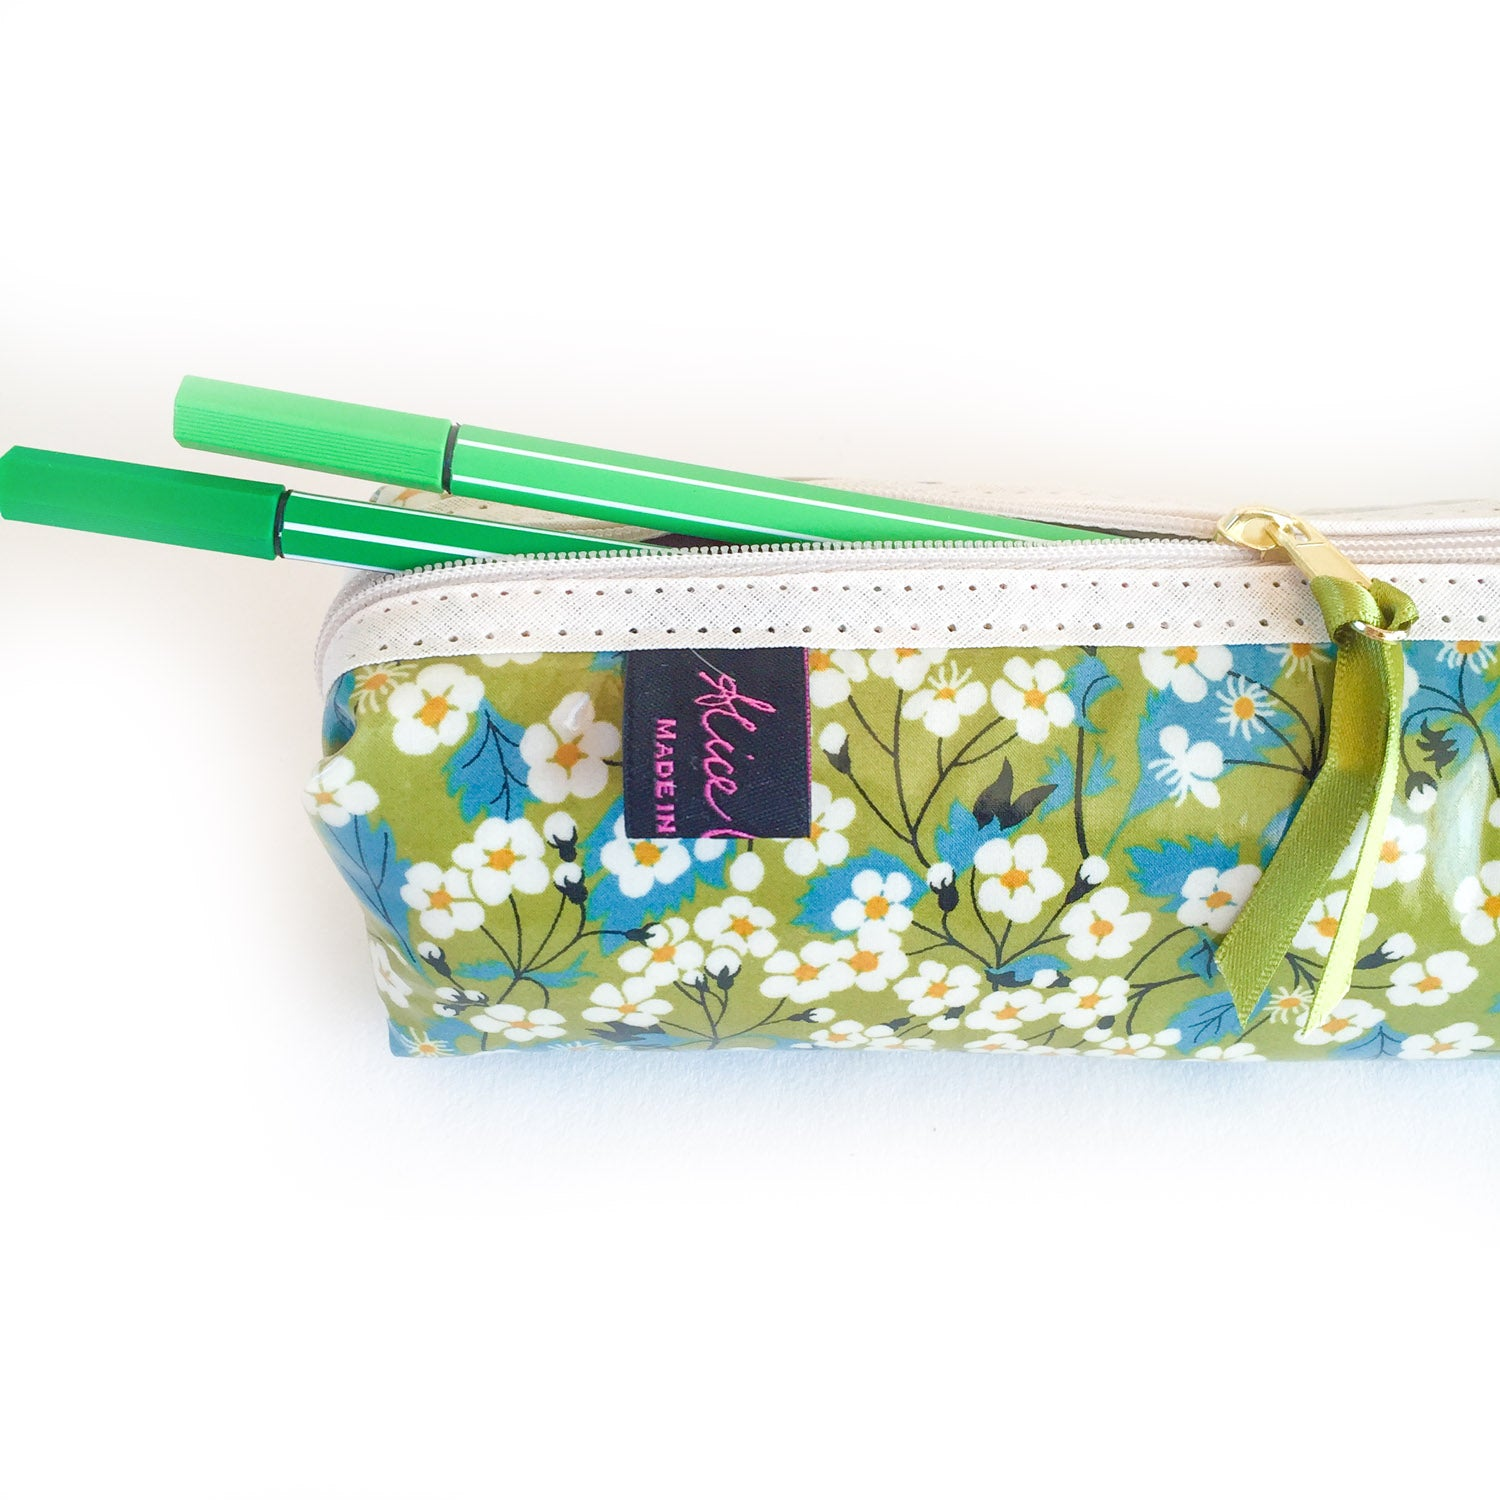 Box Pencil Case Mitsi Green - Alessandra Handmade Creations